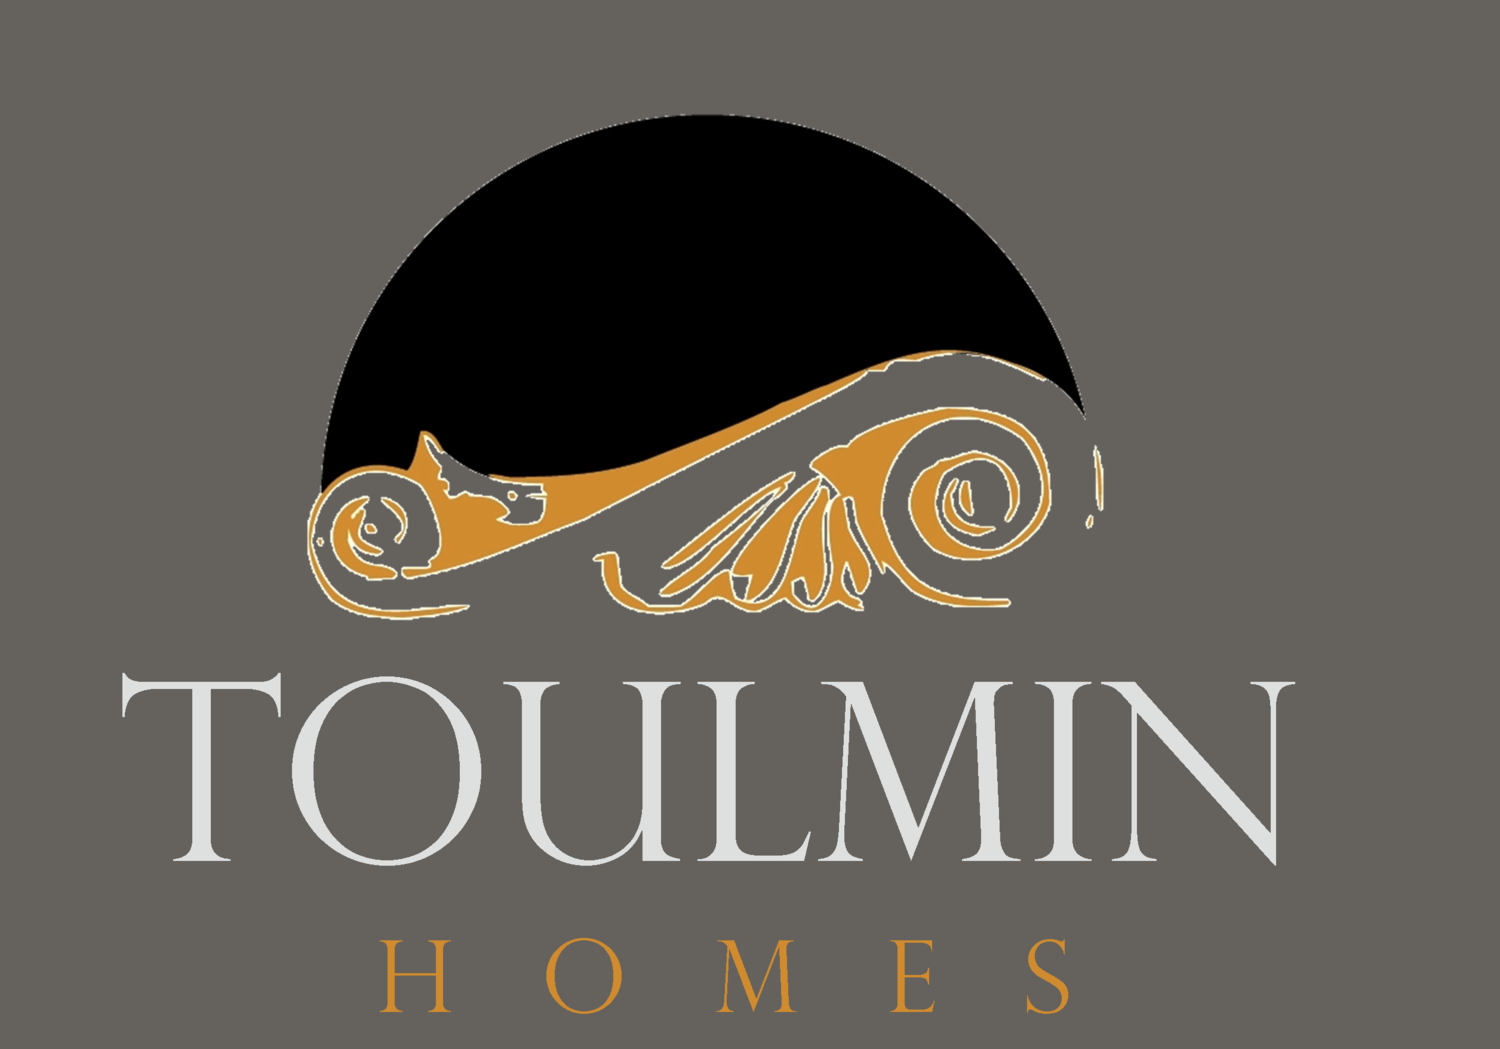 Toulmin Homes